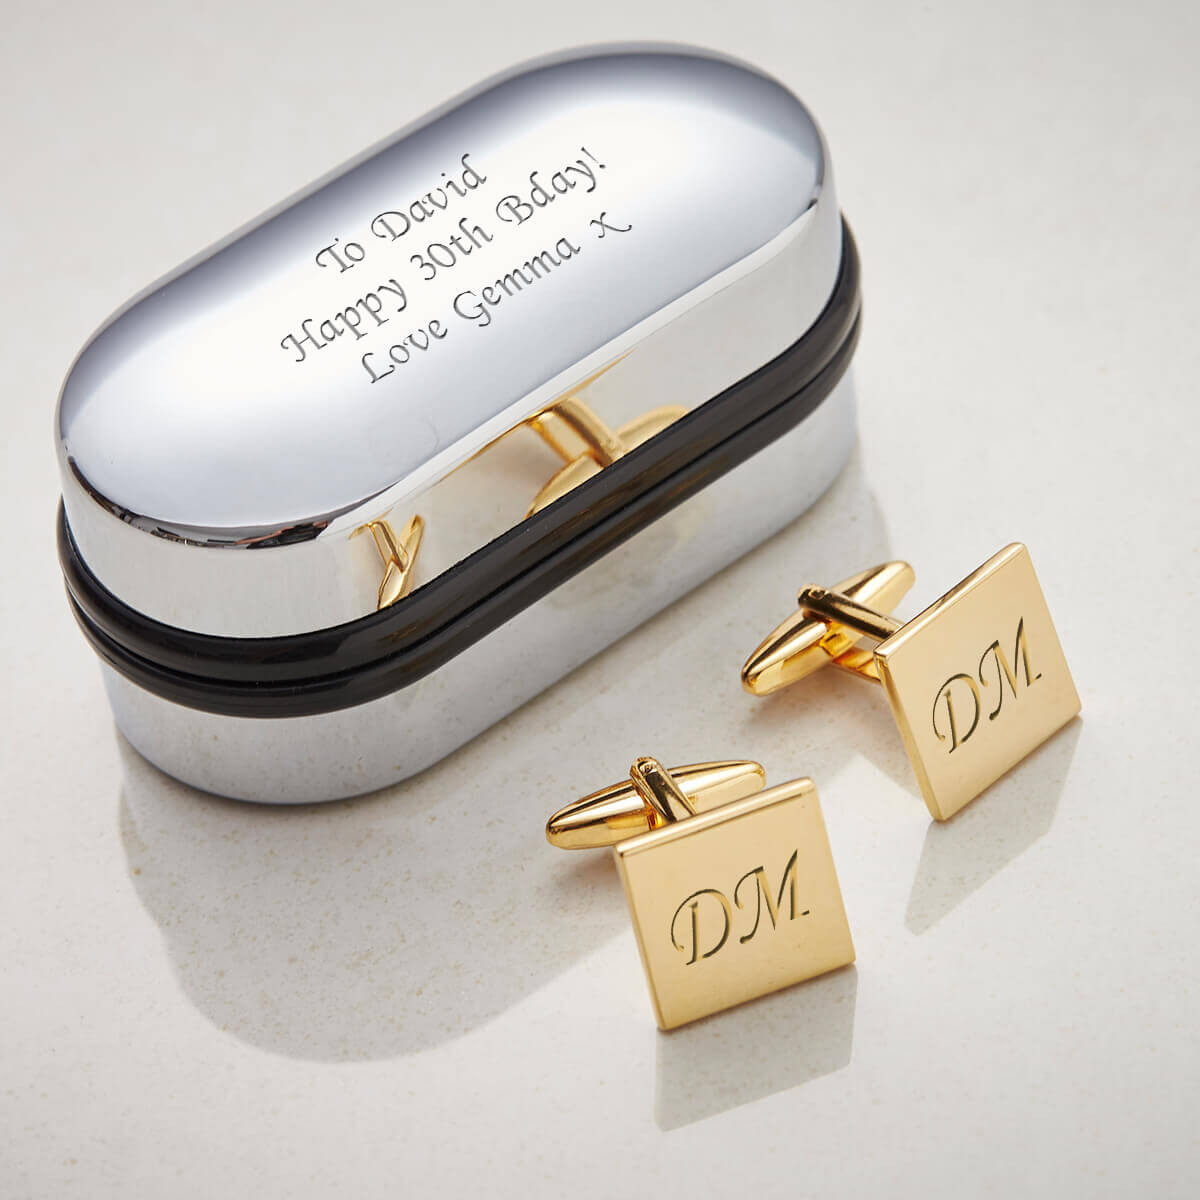 Personalised Gold Finish Square Cufflinks